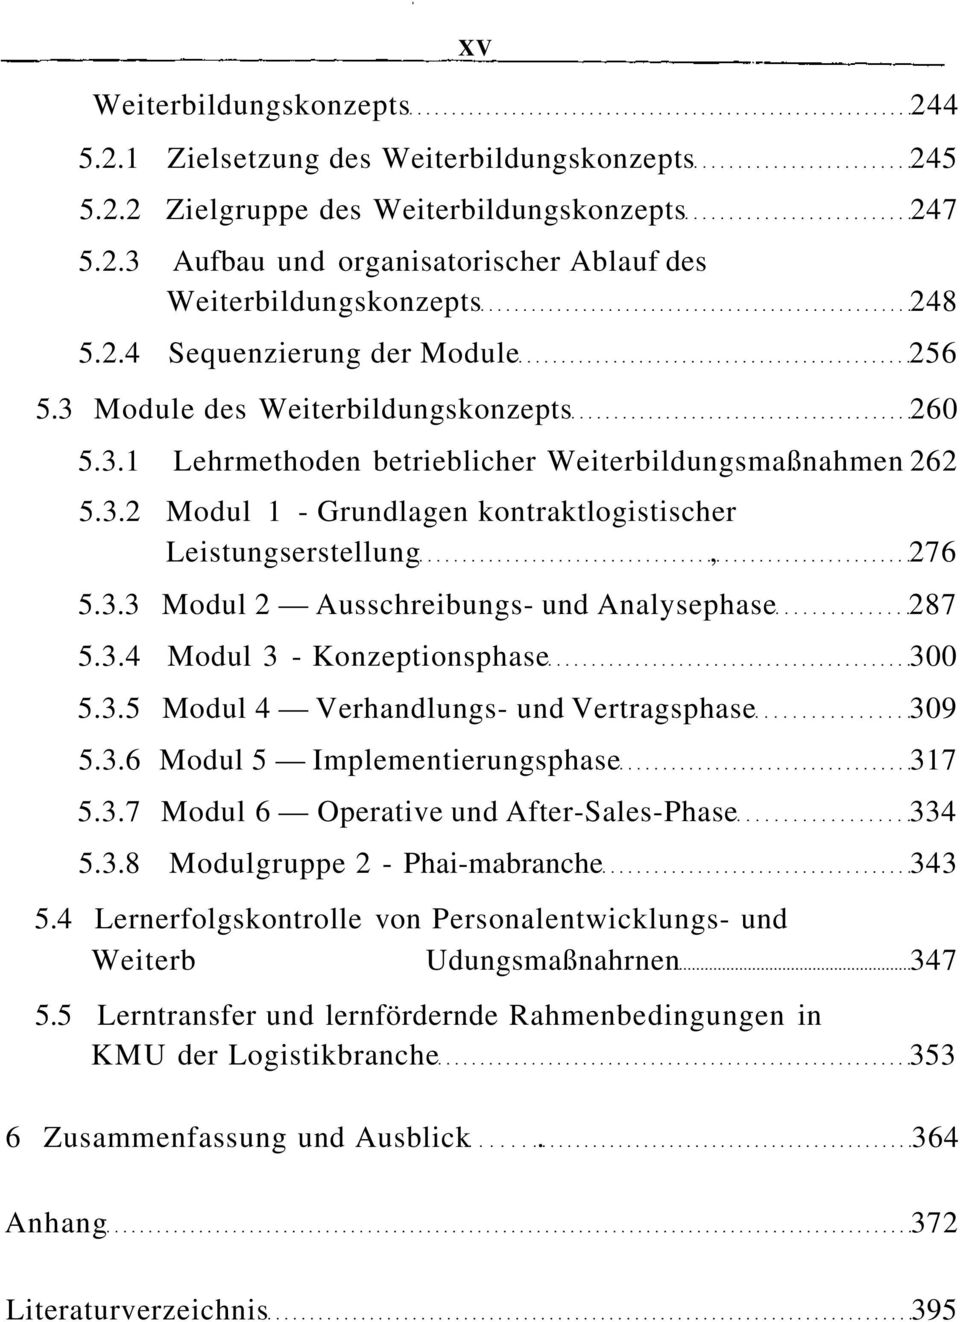 3.3 Modul 2 Ausschreibungs- und Analysephase 287 5.3.4 Modul 3 - Konzeptionsphase 300 5.3.5 Modul 4 Verhandlungs- und Vertragsphase 309 5.3.6 Modul 5 Implementierungsphase 317 5.3.7 Modul 6 Operative und After-Sales-Phase 334 5.